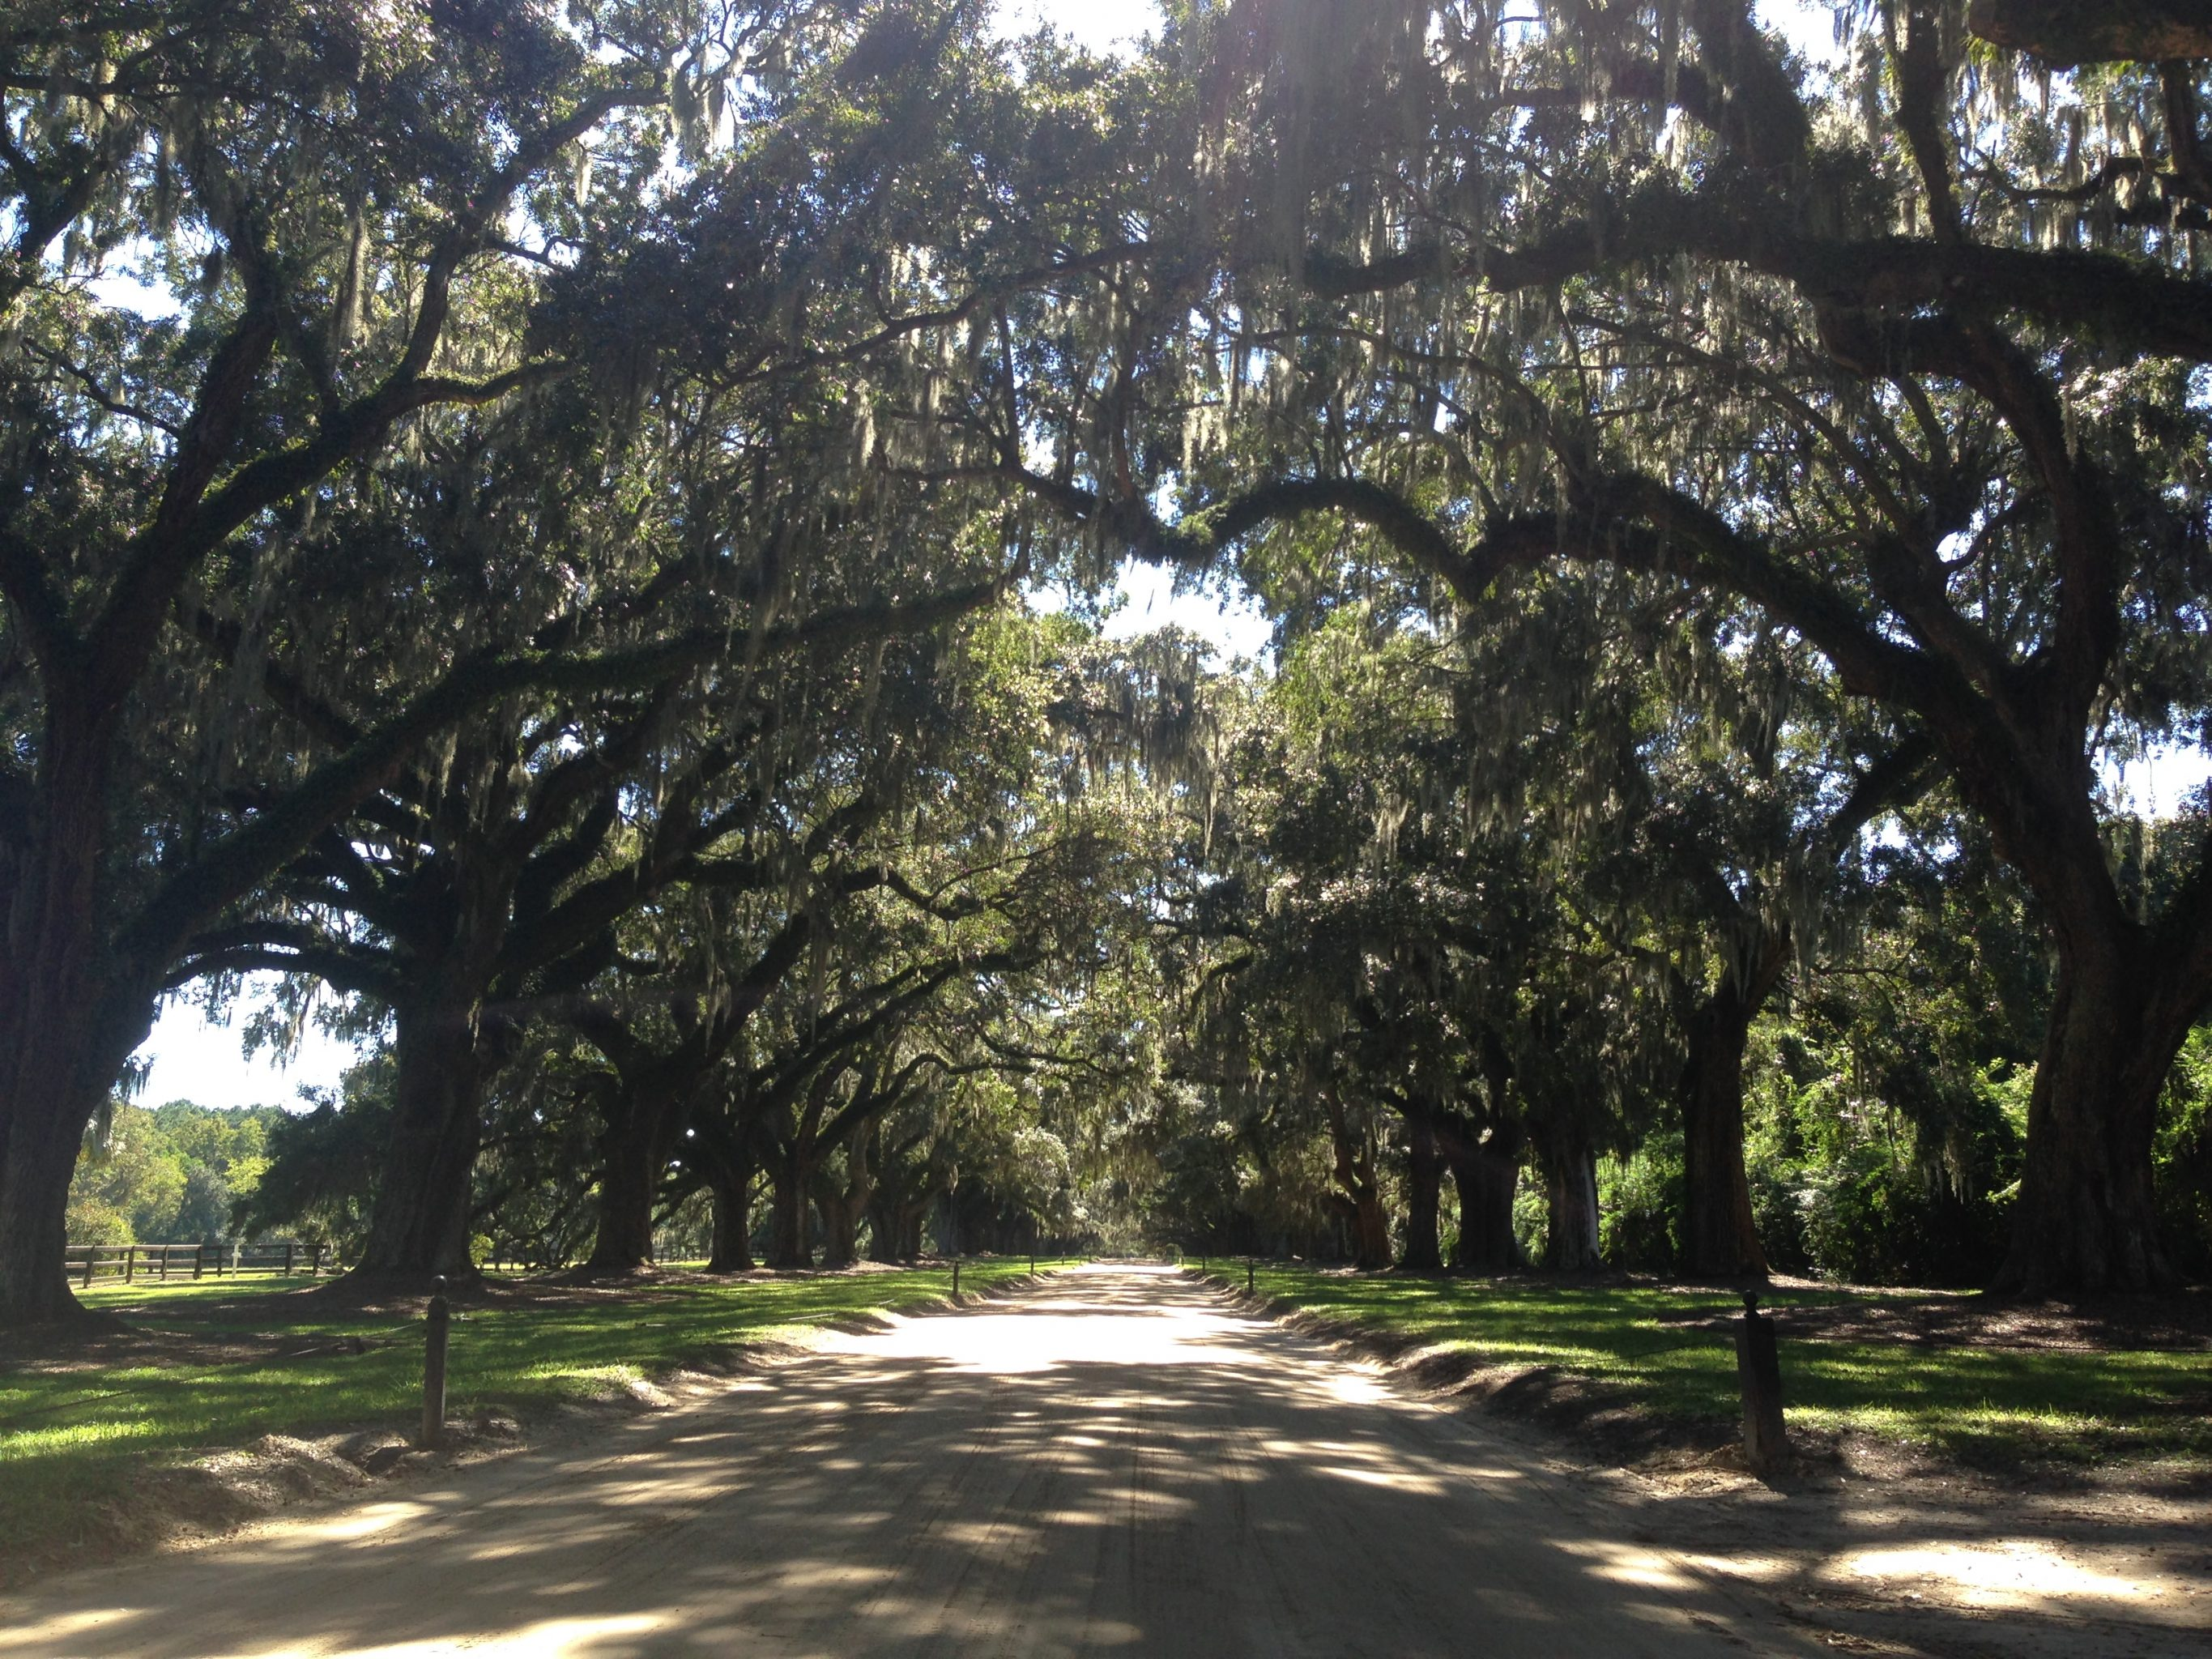 Day 139: South Carolina (Part 3)